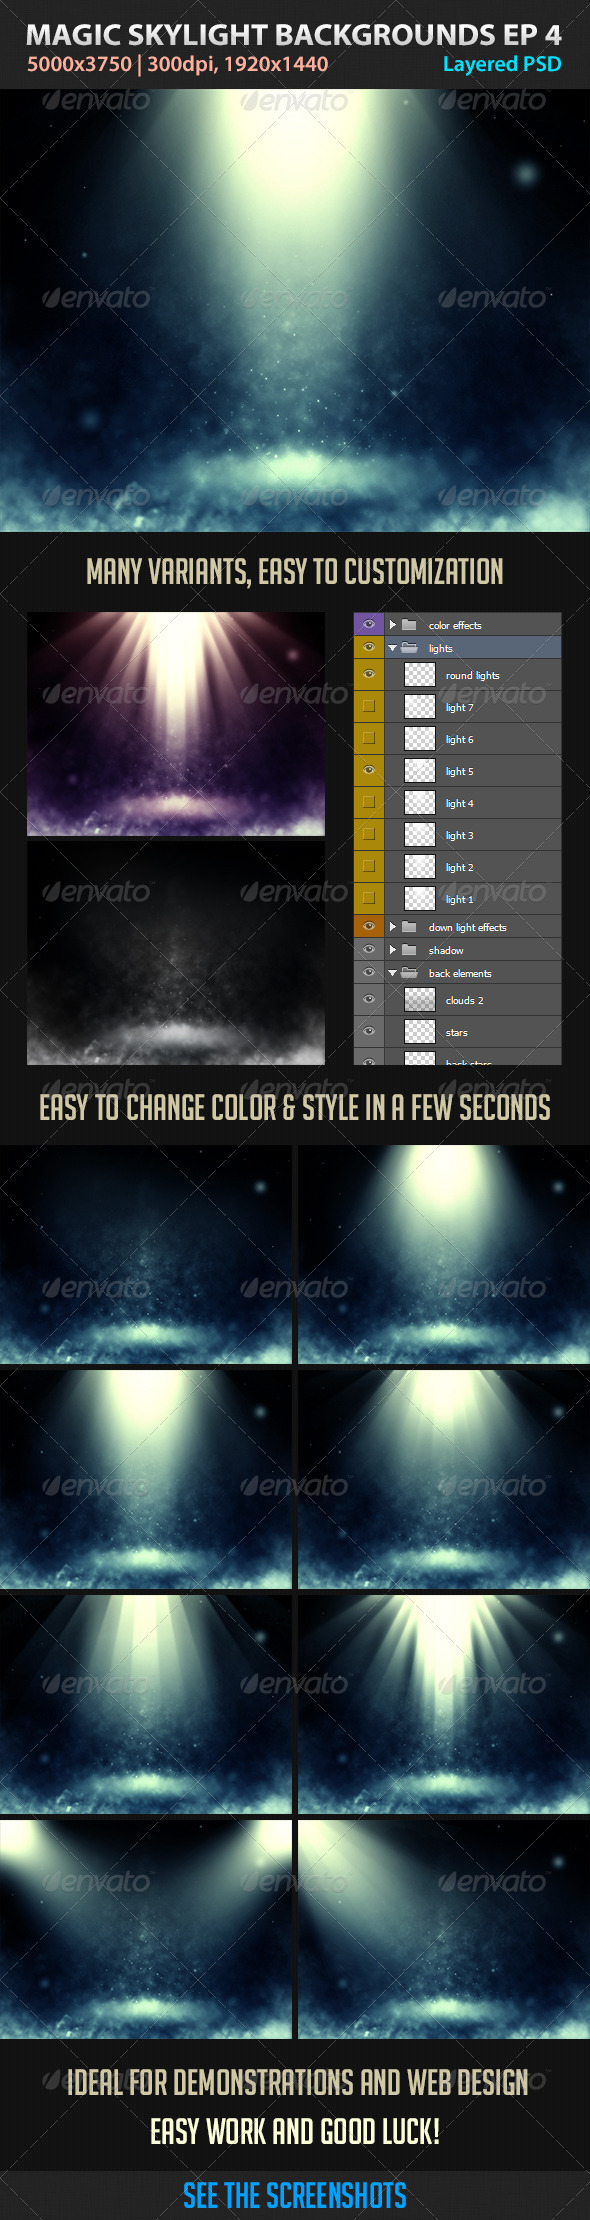 GraphicRiver Magic Skylight Backgrounds EP 4 4435687